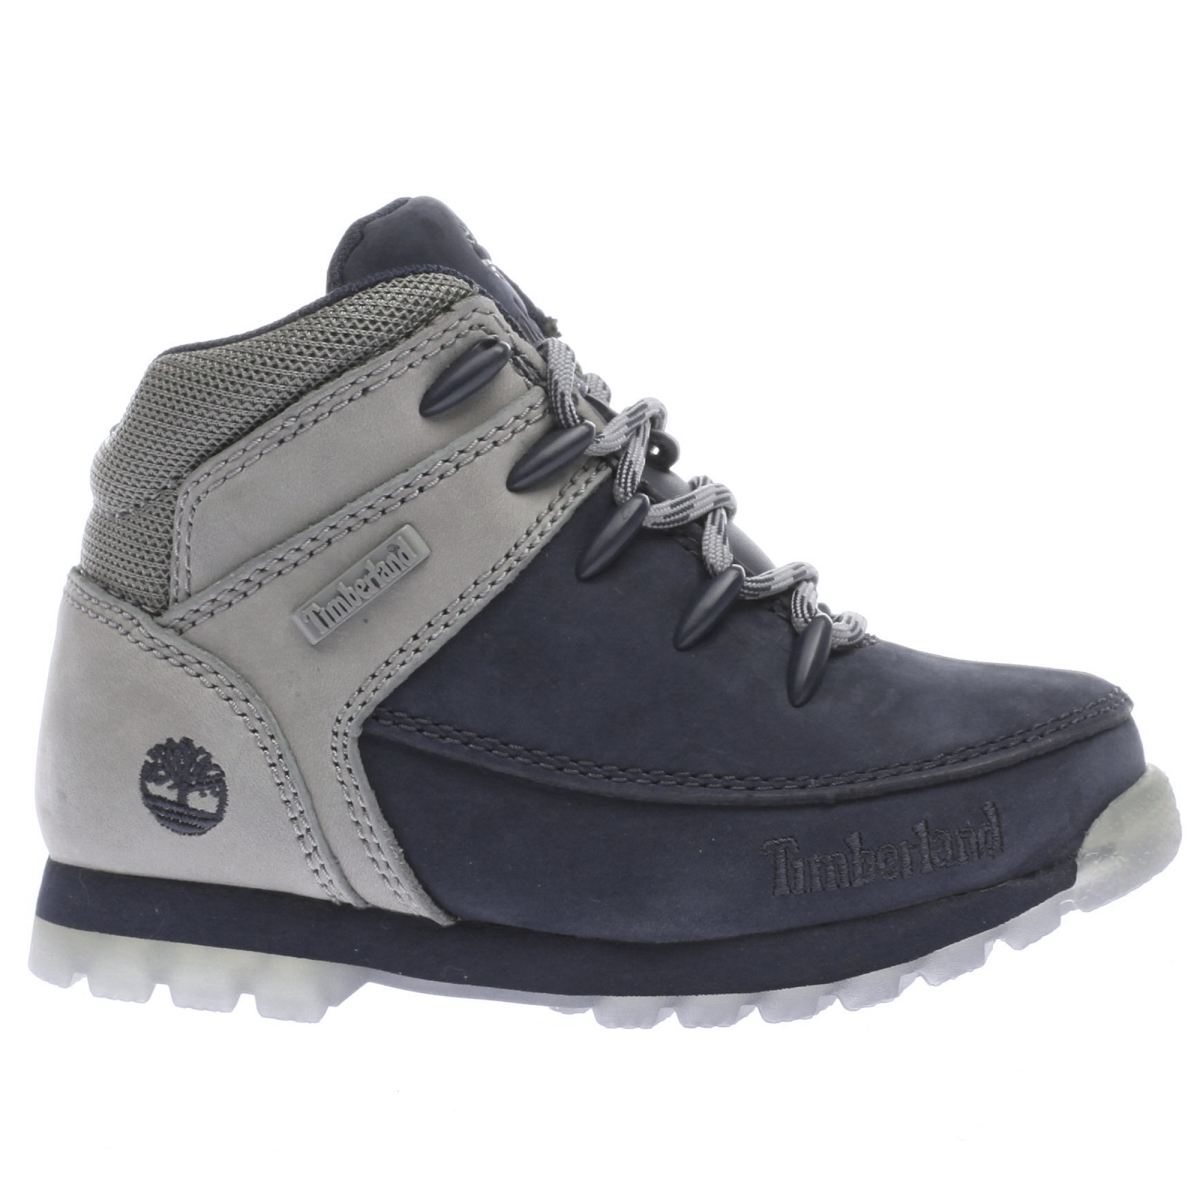 timberland navy & grey eurosprint Boys Toddler Boots